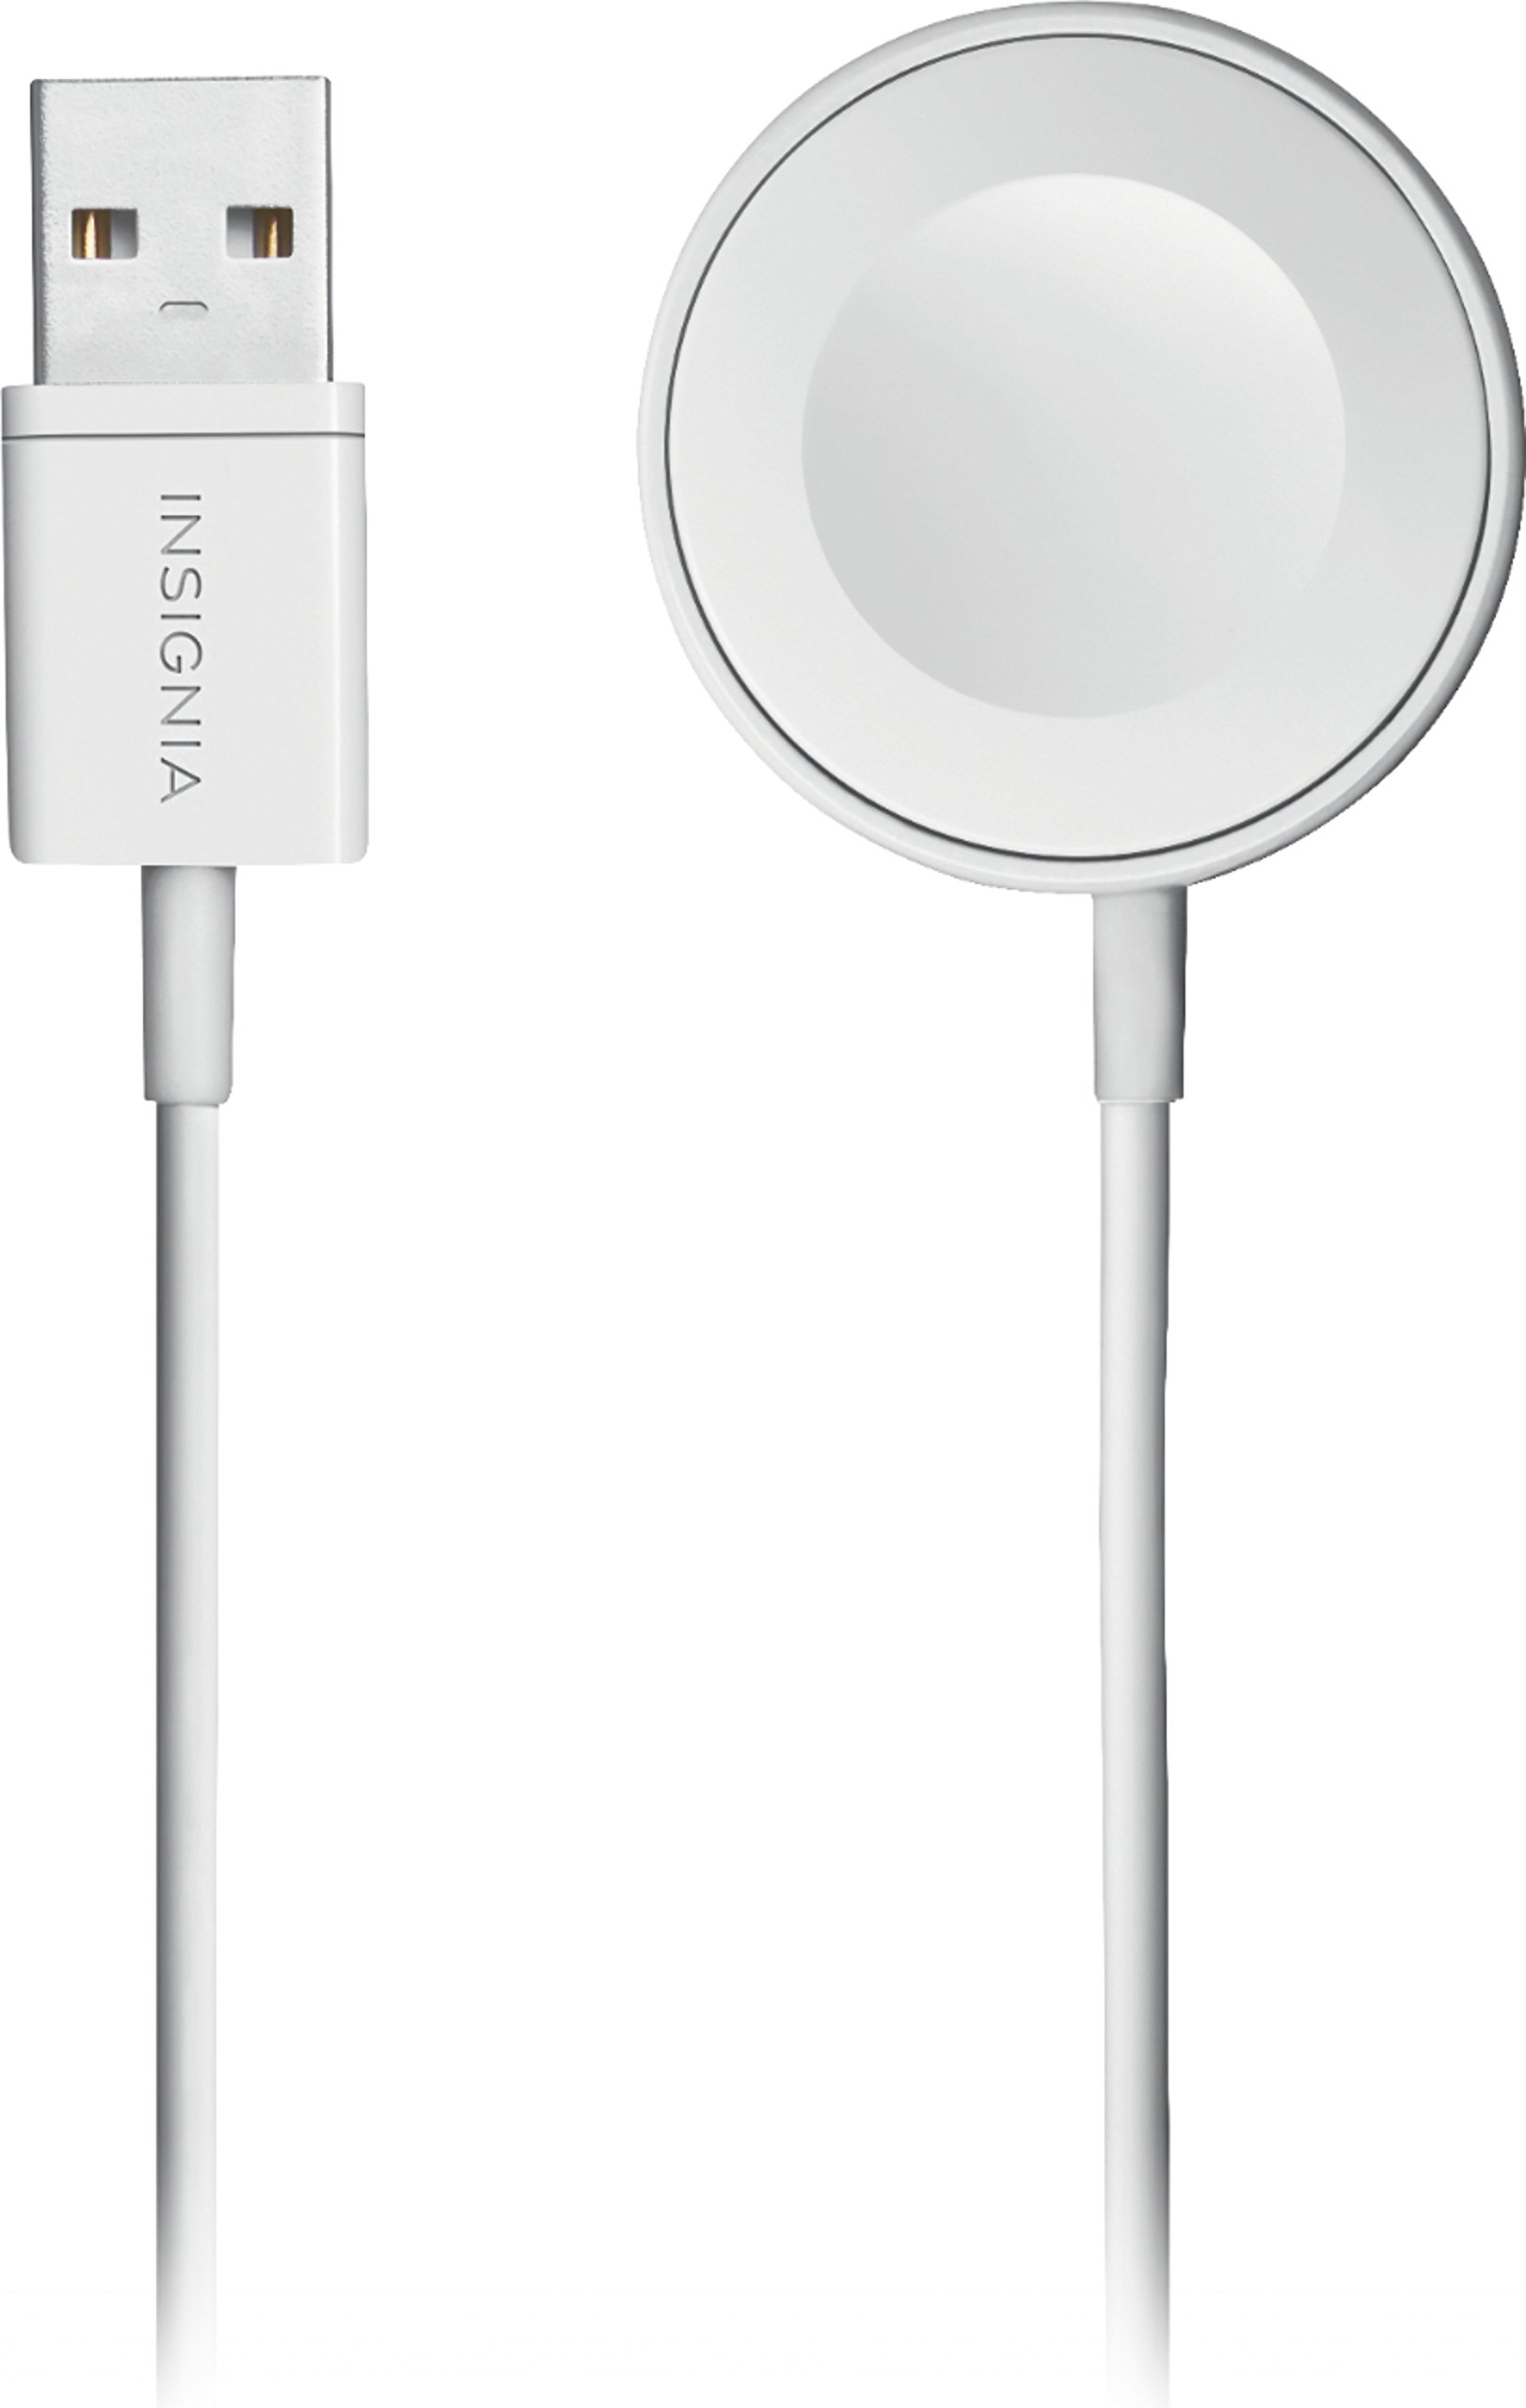 Apple MFi Certified 6' Magnetic Charging Cable for Apple Watch - White by Insignia